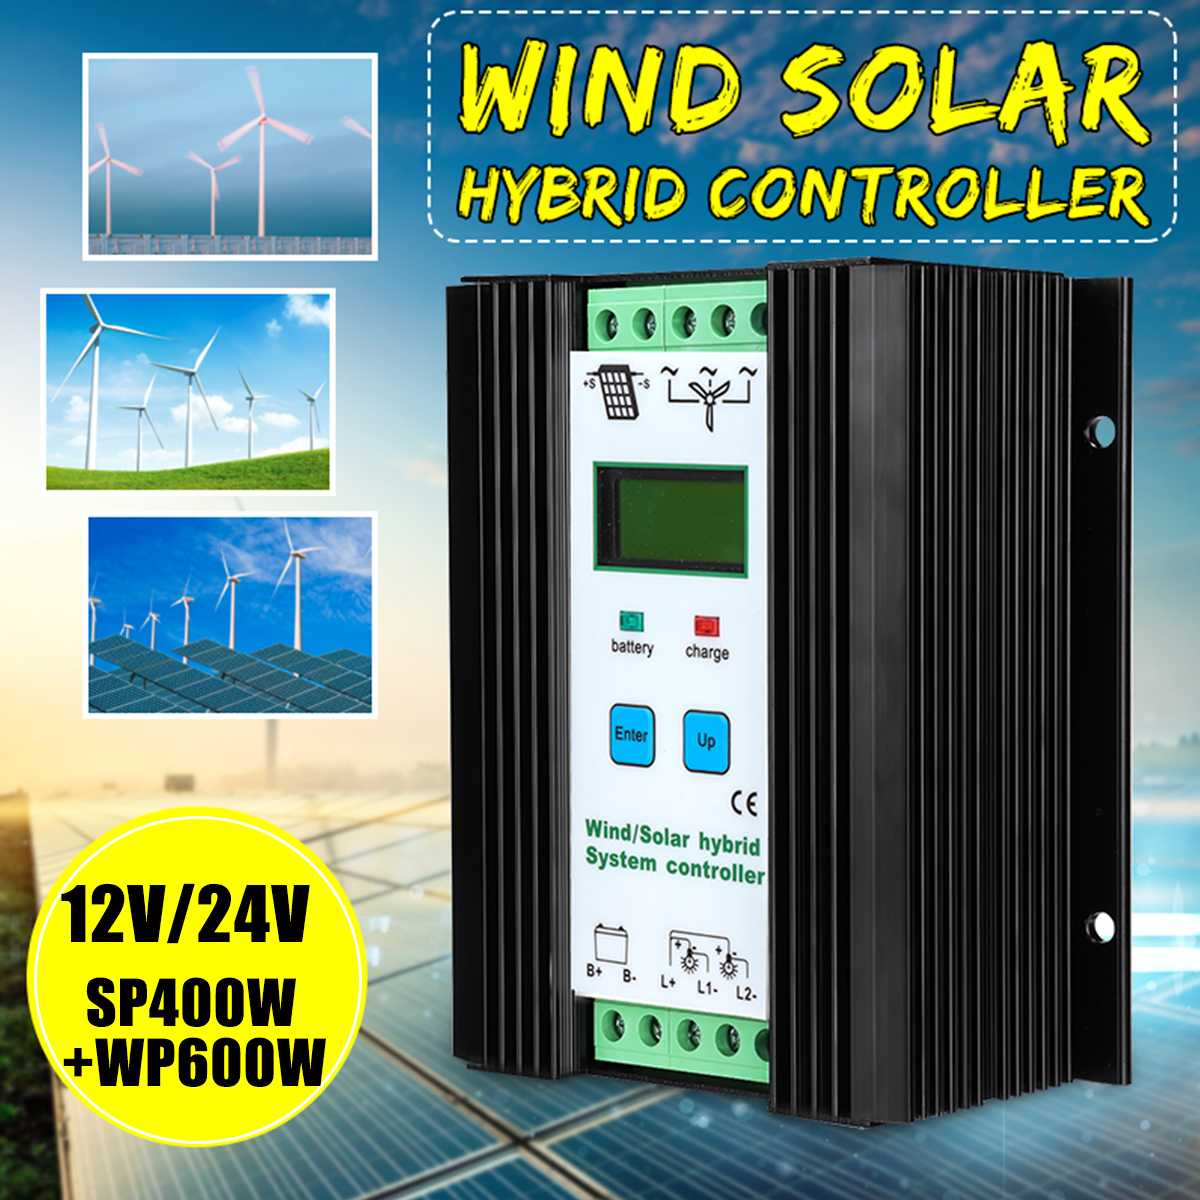 12V 24V 400W 600W Wind Solar Hybrid Charge Controller Photovoltaic Solar Street Light Wind Generator Controller Big LCD Display12V 24V 400W 600W Wind Solar Hybrid Charge Controller Photovoltaic Solar Street Light Wind Generator Controller Big LCD Display